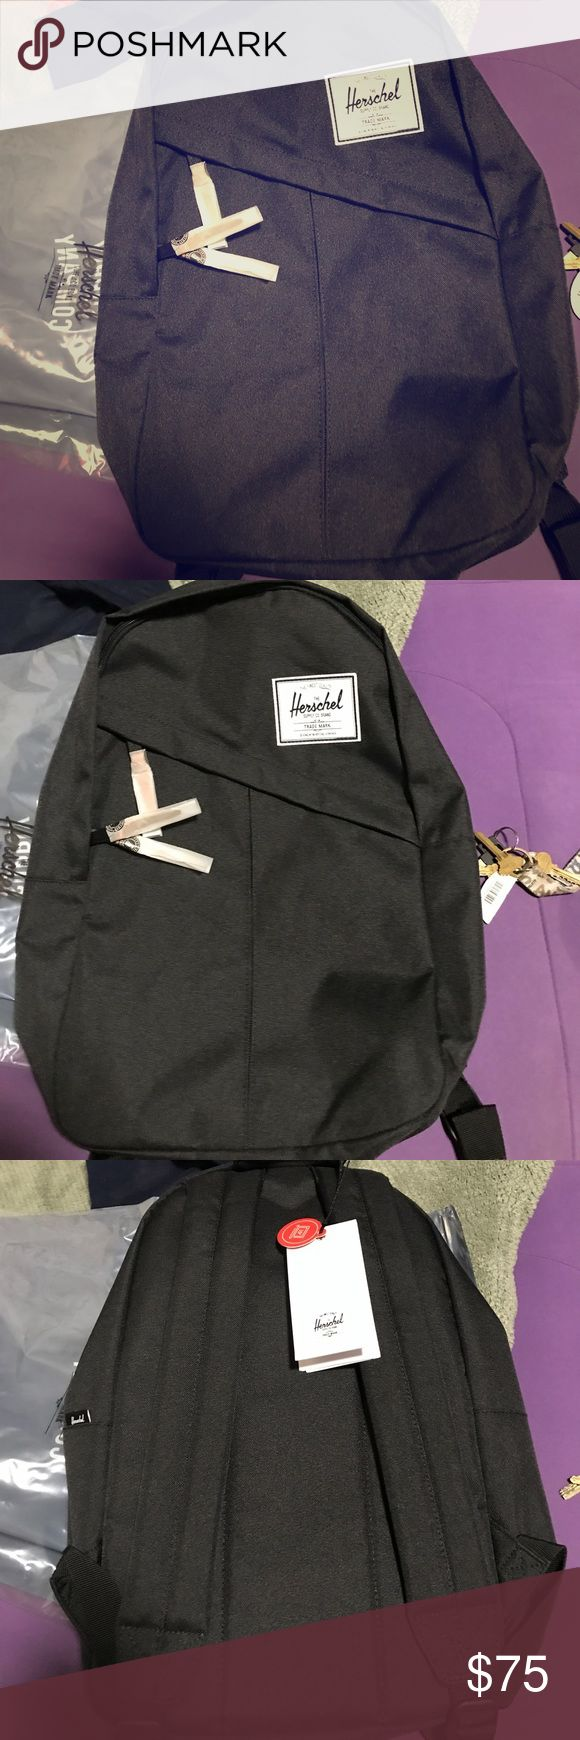 Black Herschel back pack Brand New, all black Herschel backpack. Can hold 15' laptop. Tags still attached never used Herschel Supply Company Bags Backpacks